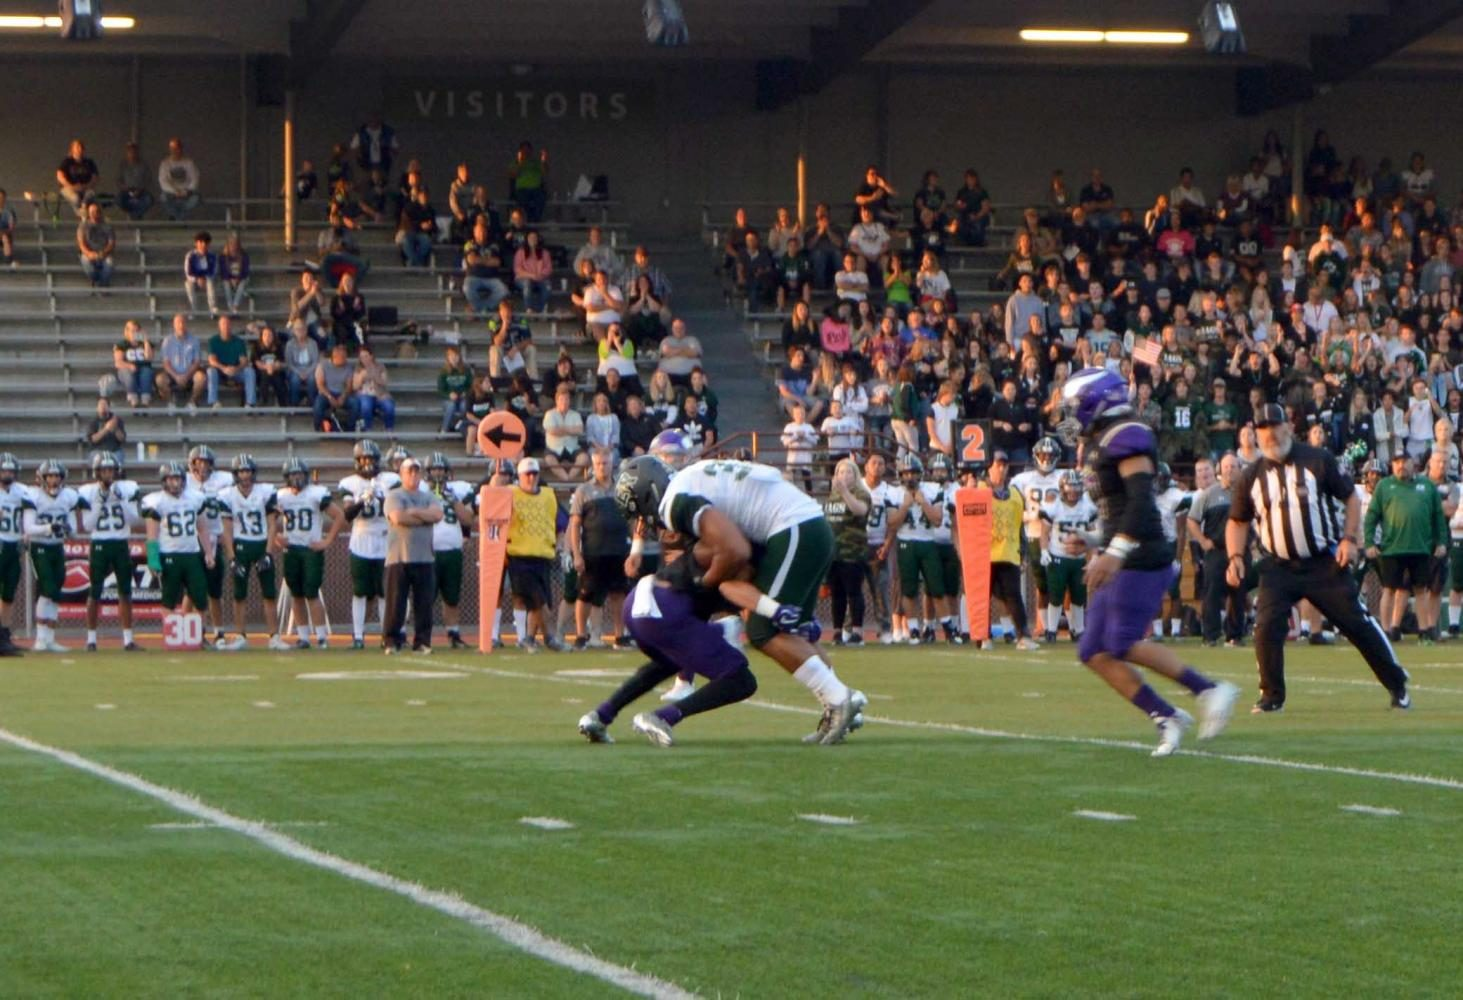 One of the Vikings linebackers make a hard it on an ER wide receiver. The Vikings went on to win the game 41-13